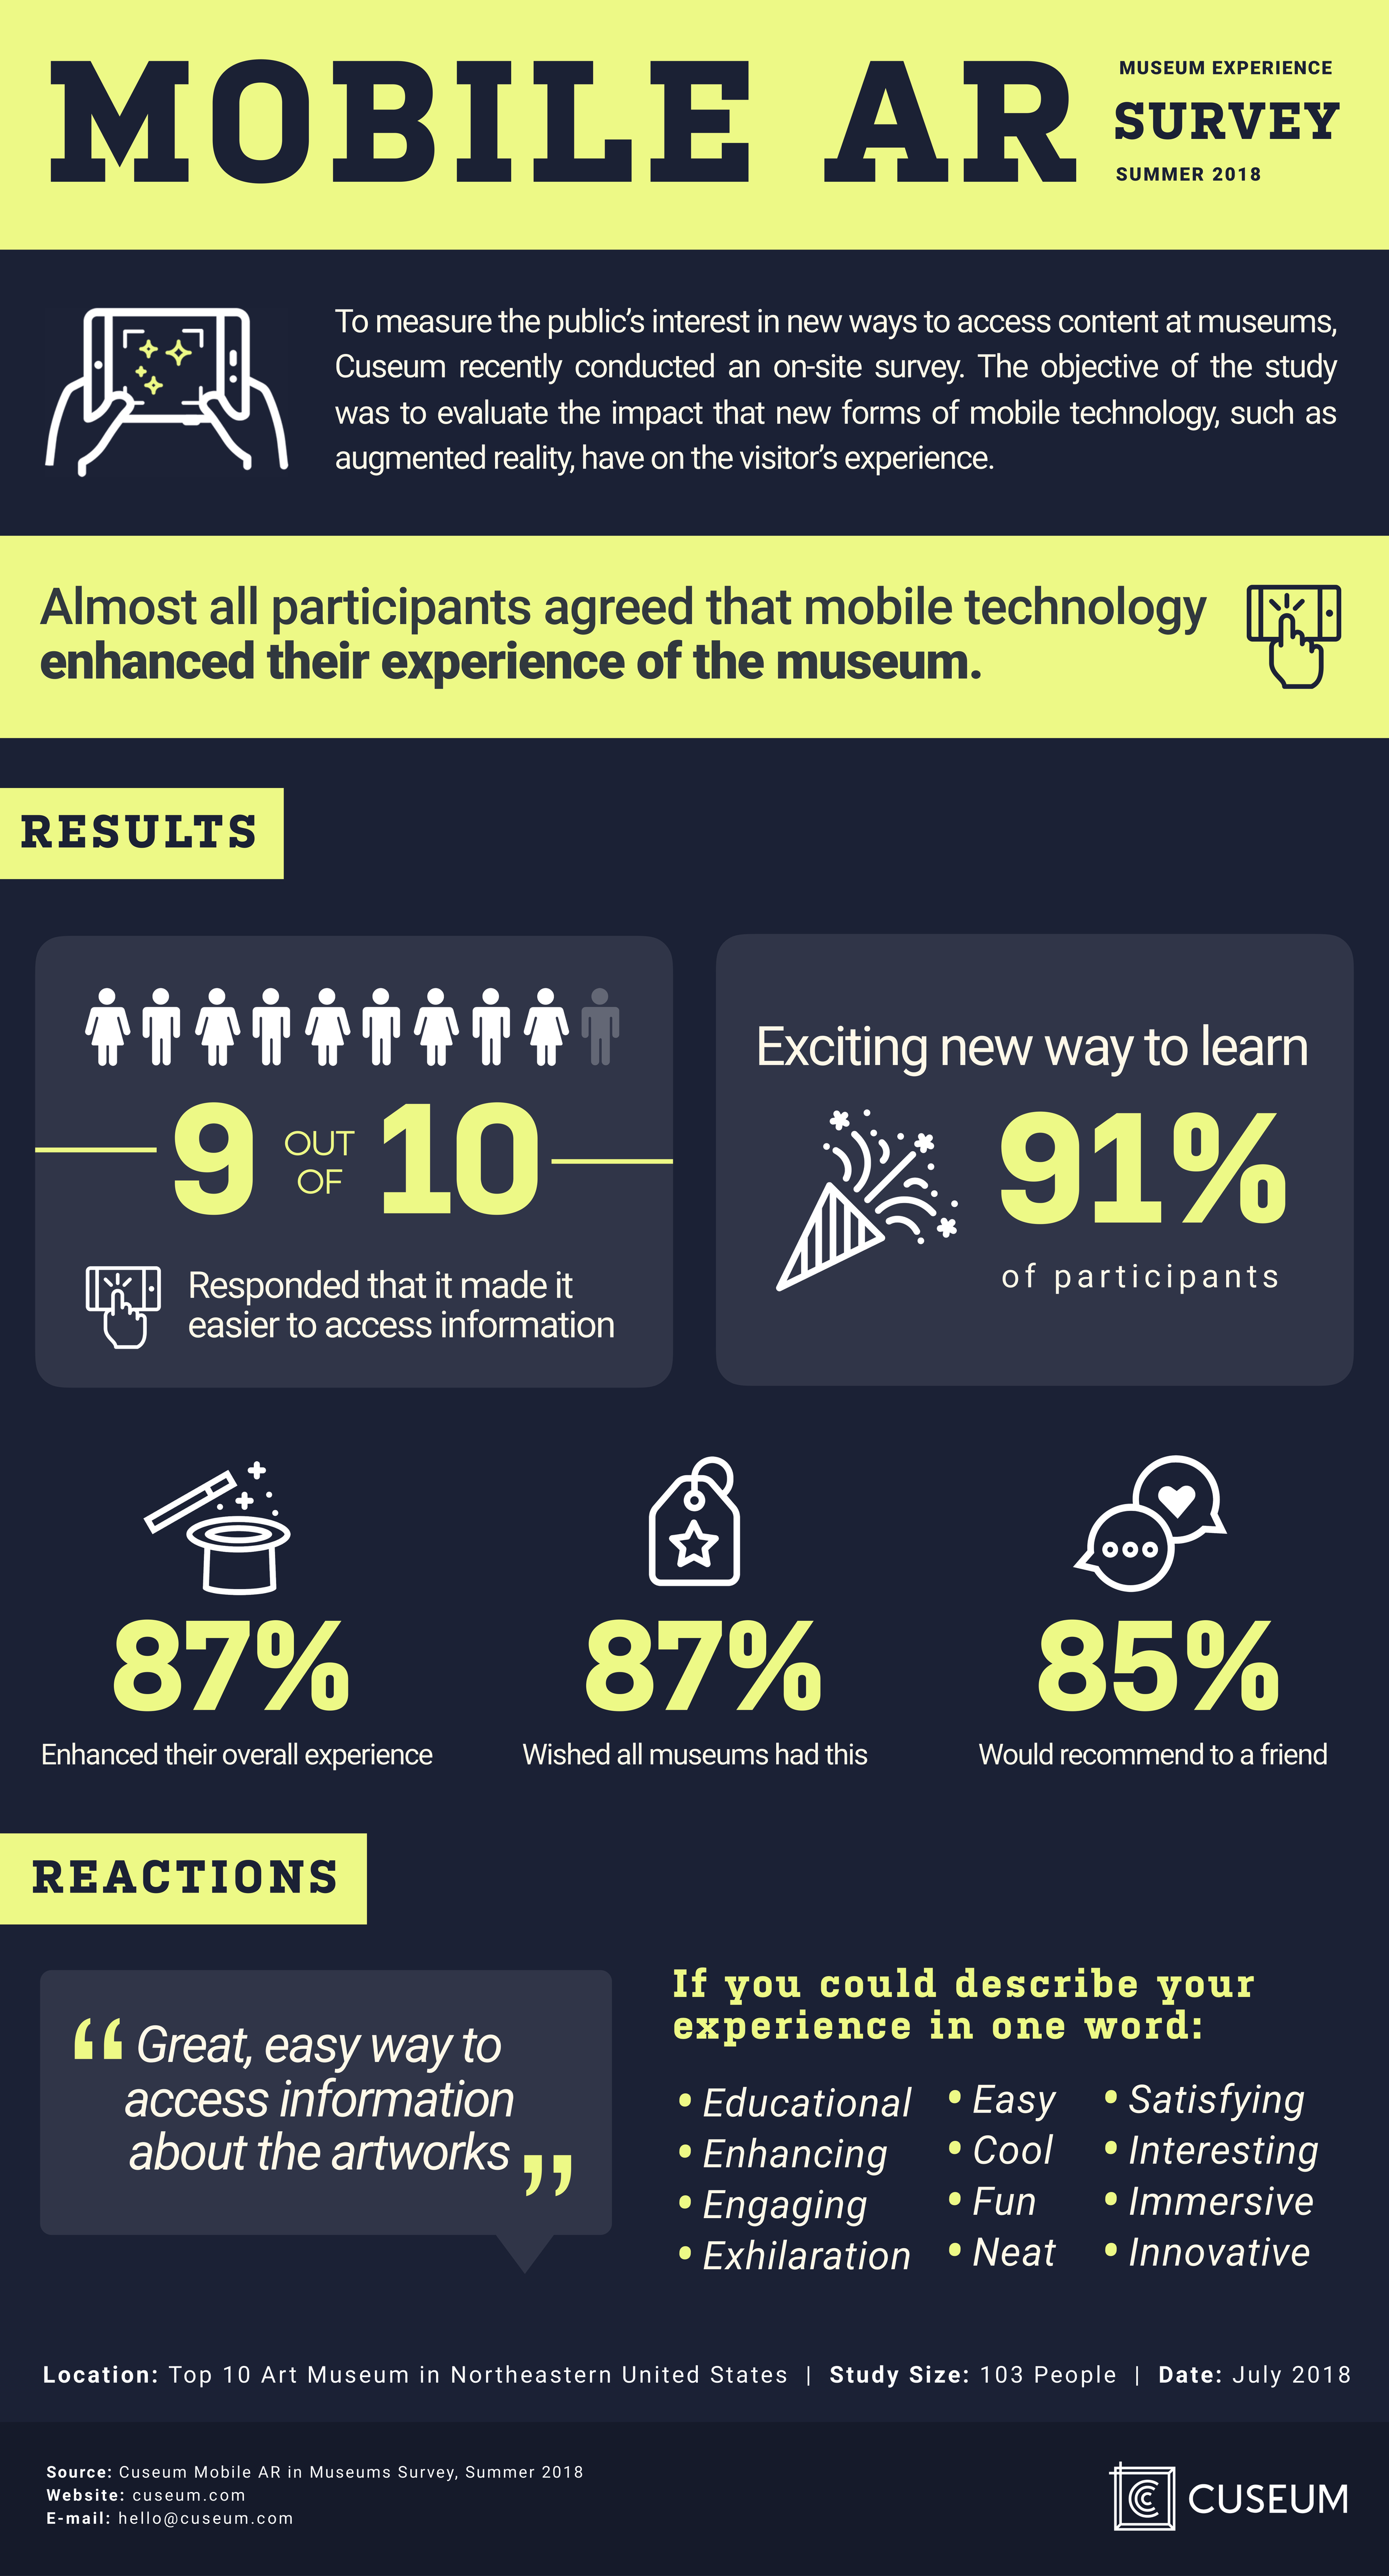 Cuseum-Mobile-AR-Survey-Infographic-2018.png